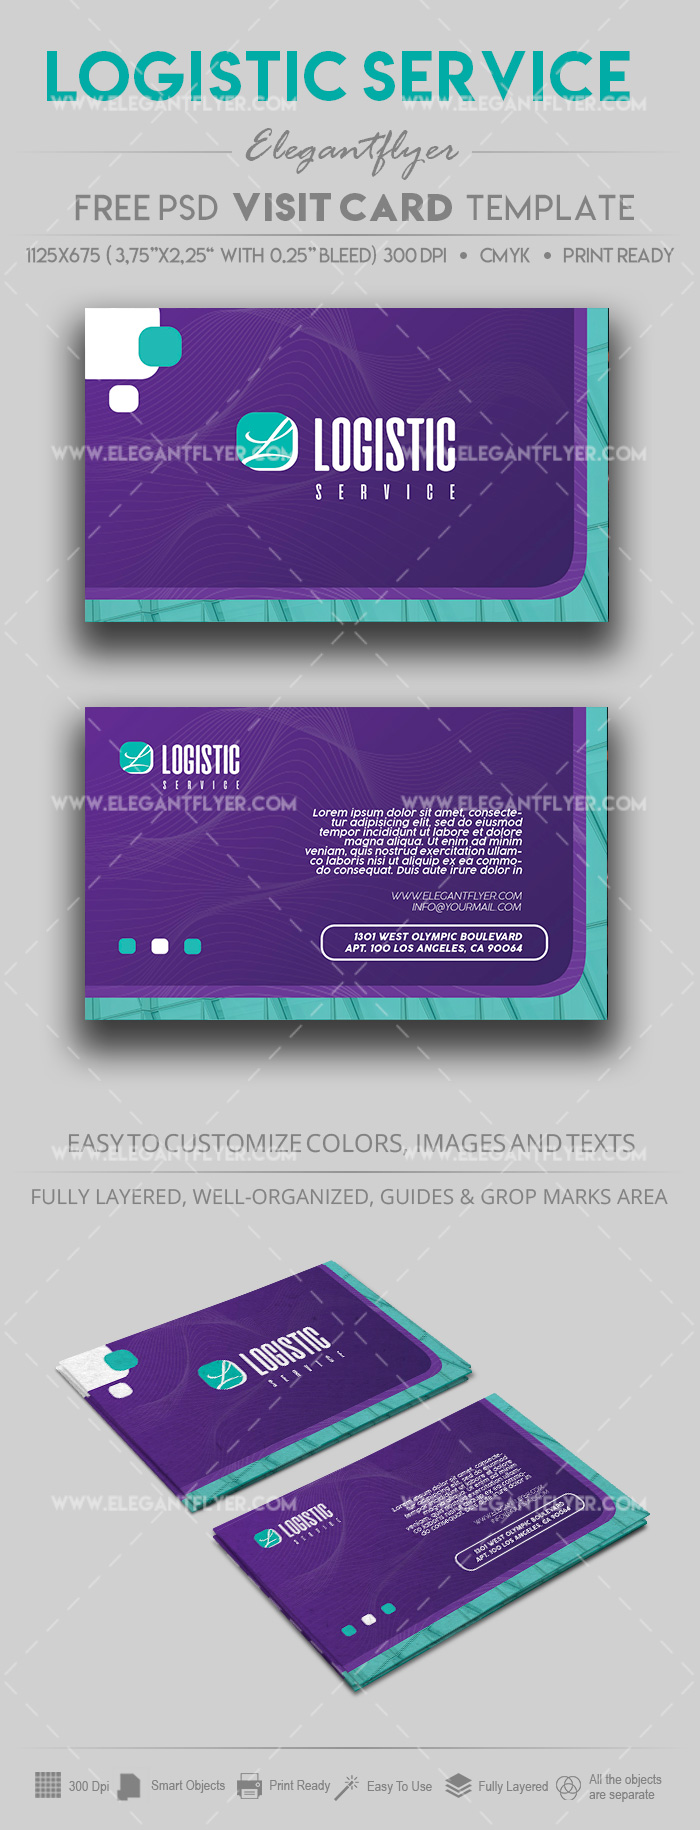 Logistic Services – Free PSD Business Card Template